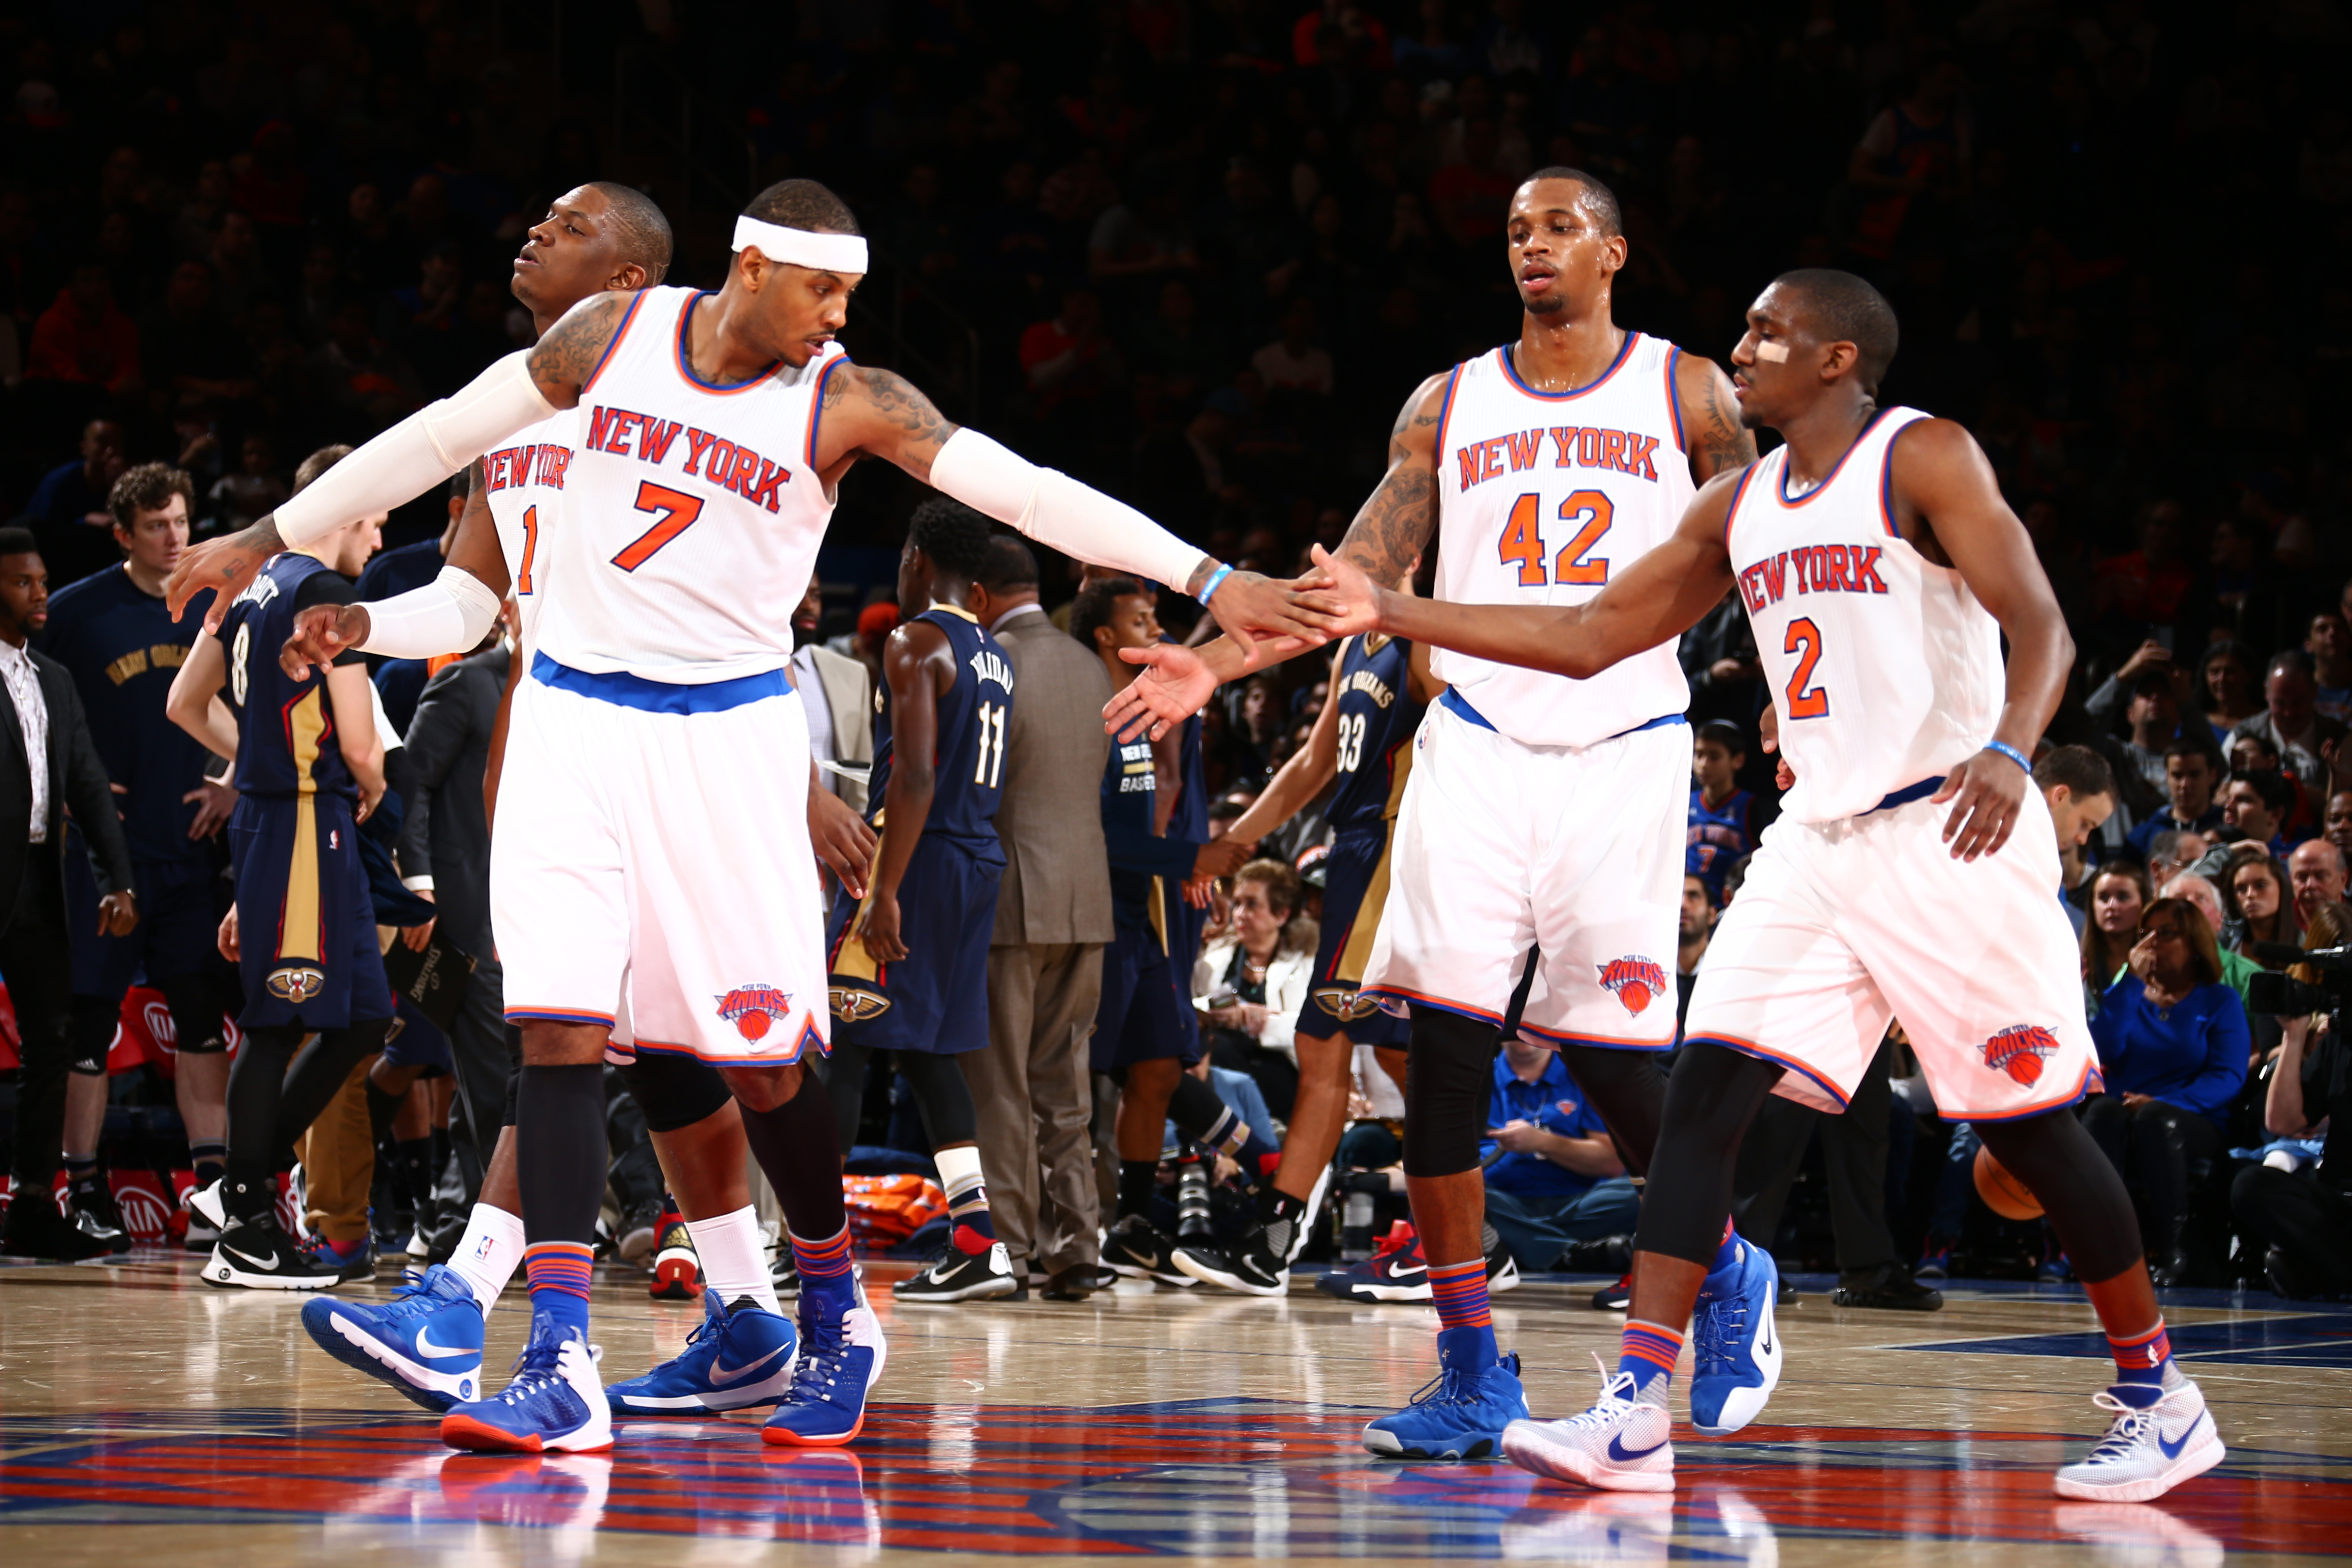 NEW YORK, NY - NOVEMBER 15: Carmelo Anthony #7 high fives teammate Langston Galloway #2 of the New York Knicks during the game on November 15, 2015 at Madison Square Garden in New York, New York. (Photo by Nathaniel S. Butler/NBAE via Getty Images)